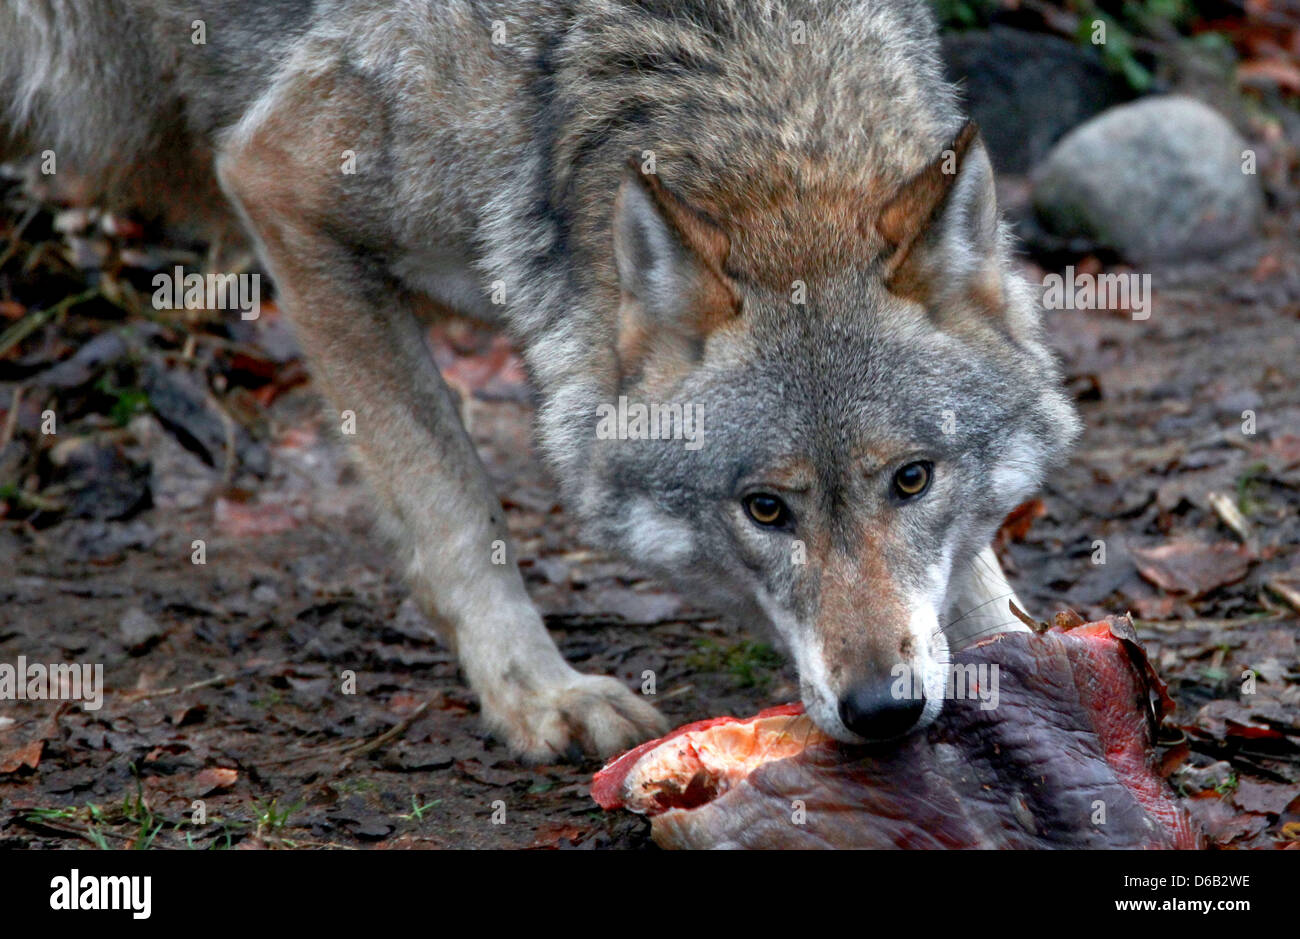 (FILE) An archive photo dated 16 January 2012 shows a wolf taking a piece of meat at the zoo in Schwerin, Germany. - Stock Image